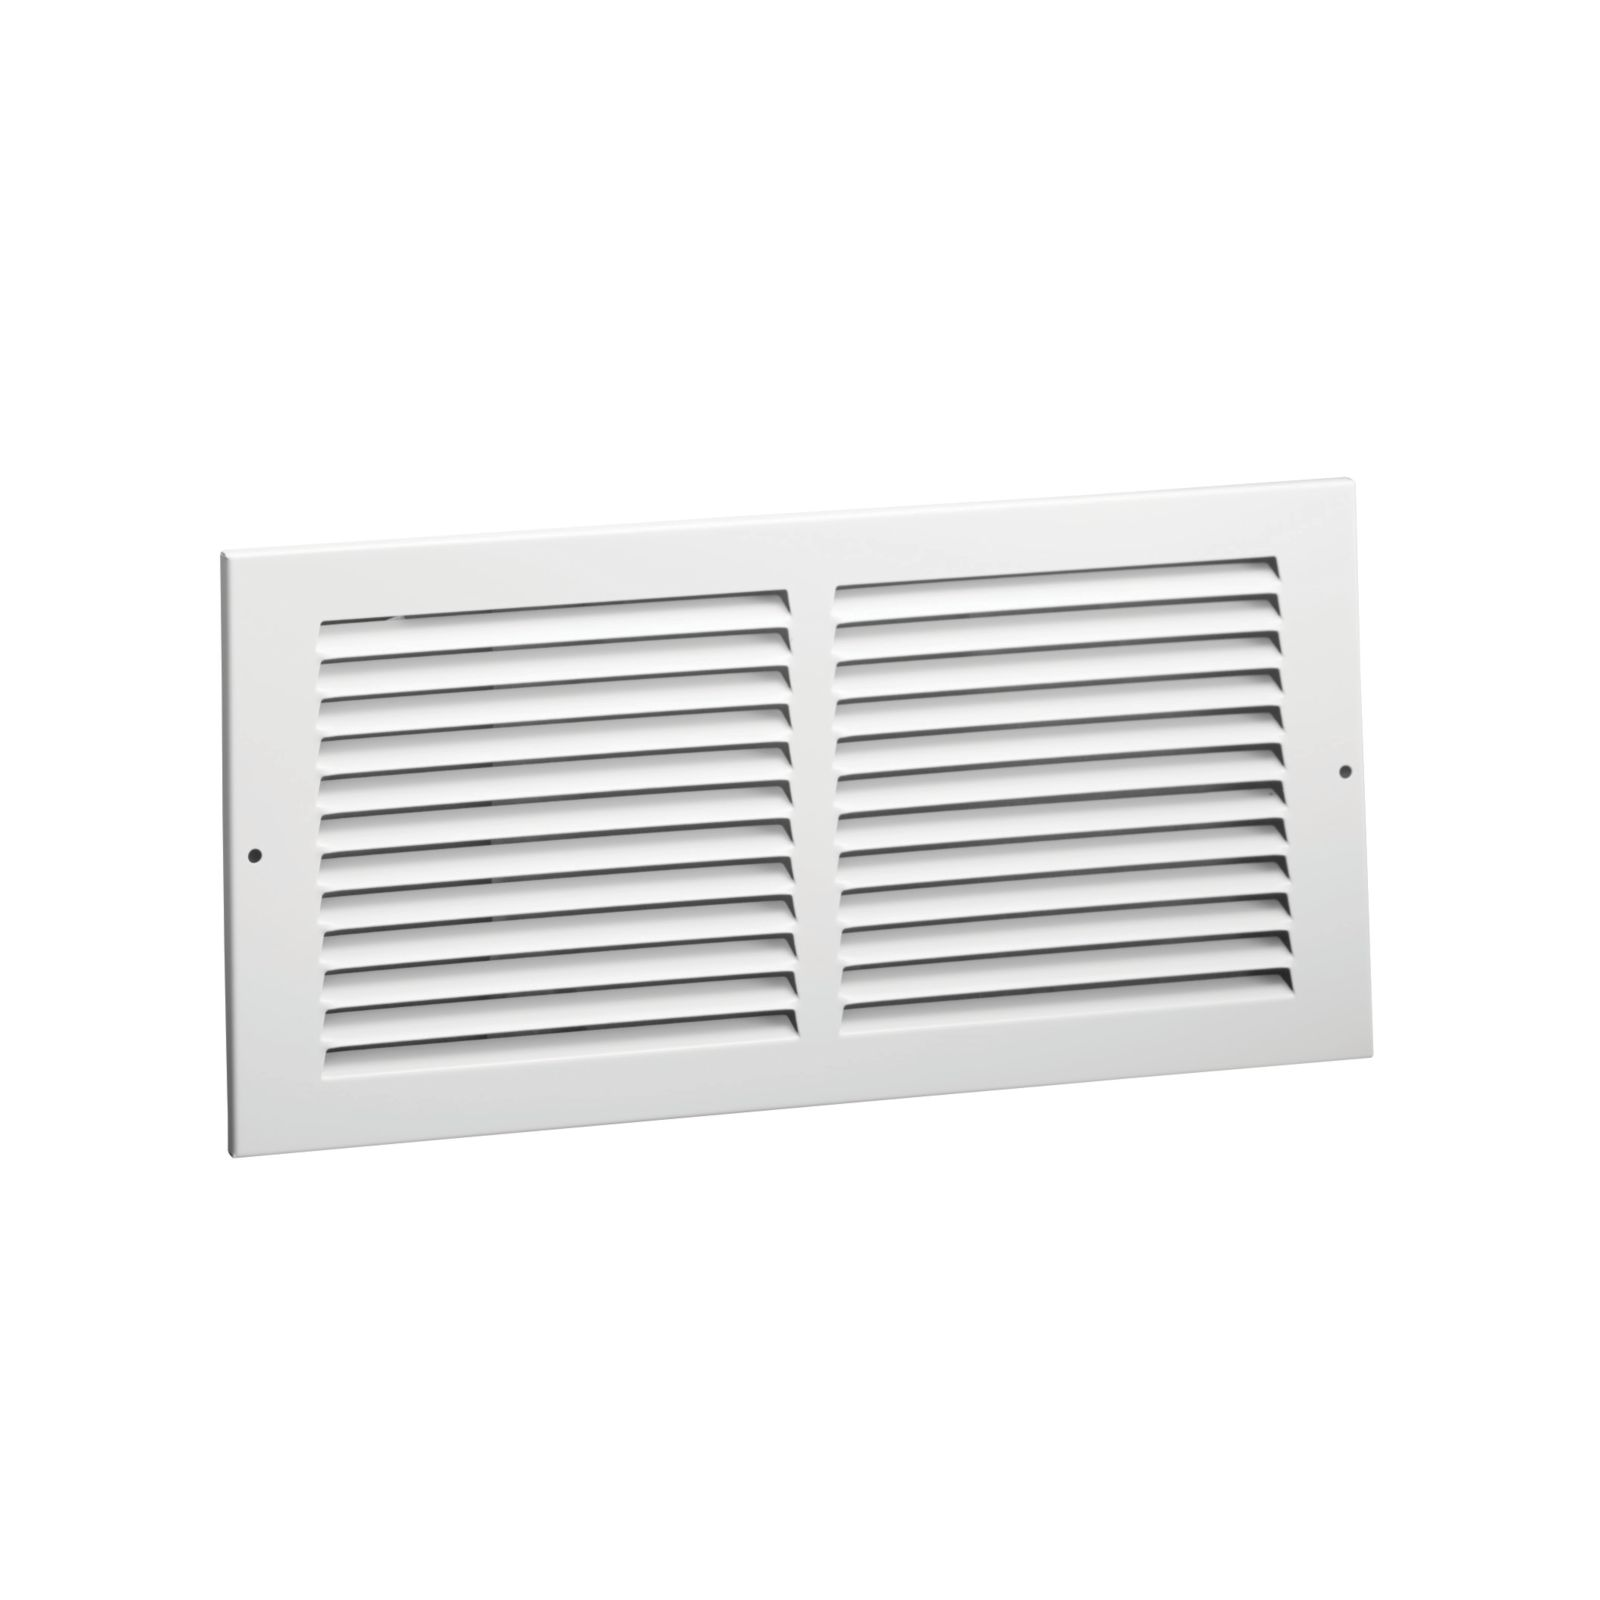 "Hart & Cooley 043318 - #672 Steel Return Air Grille, White Finish, 12"" X 12"""